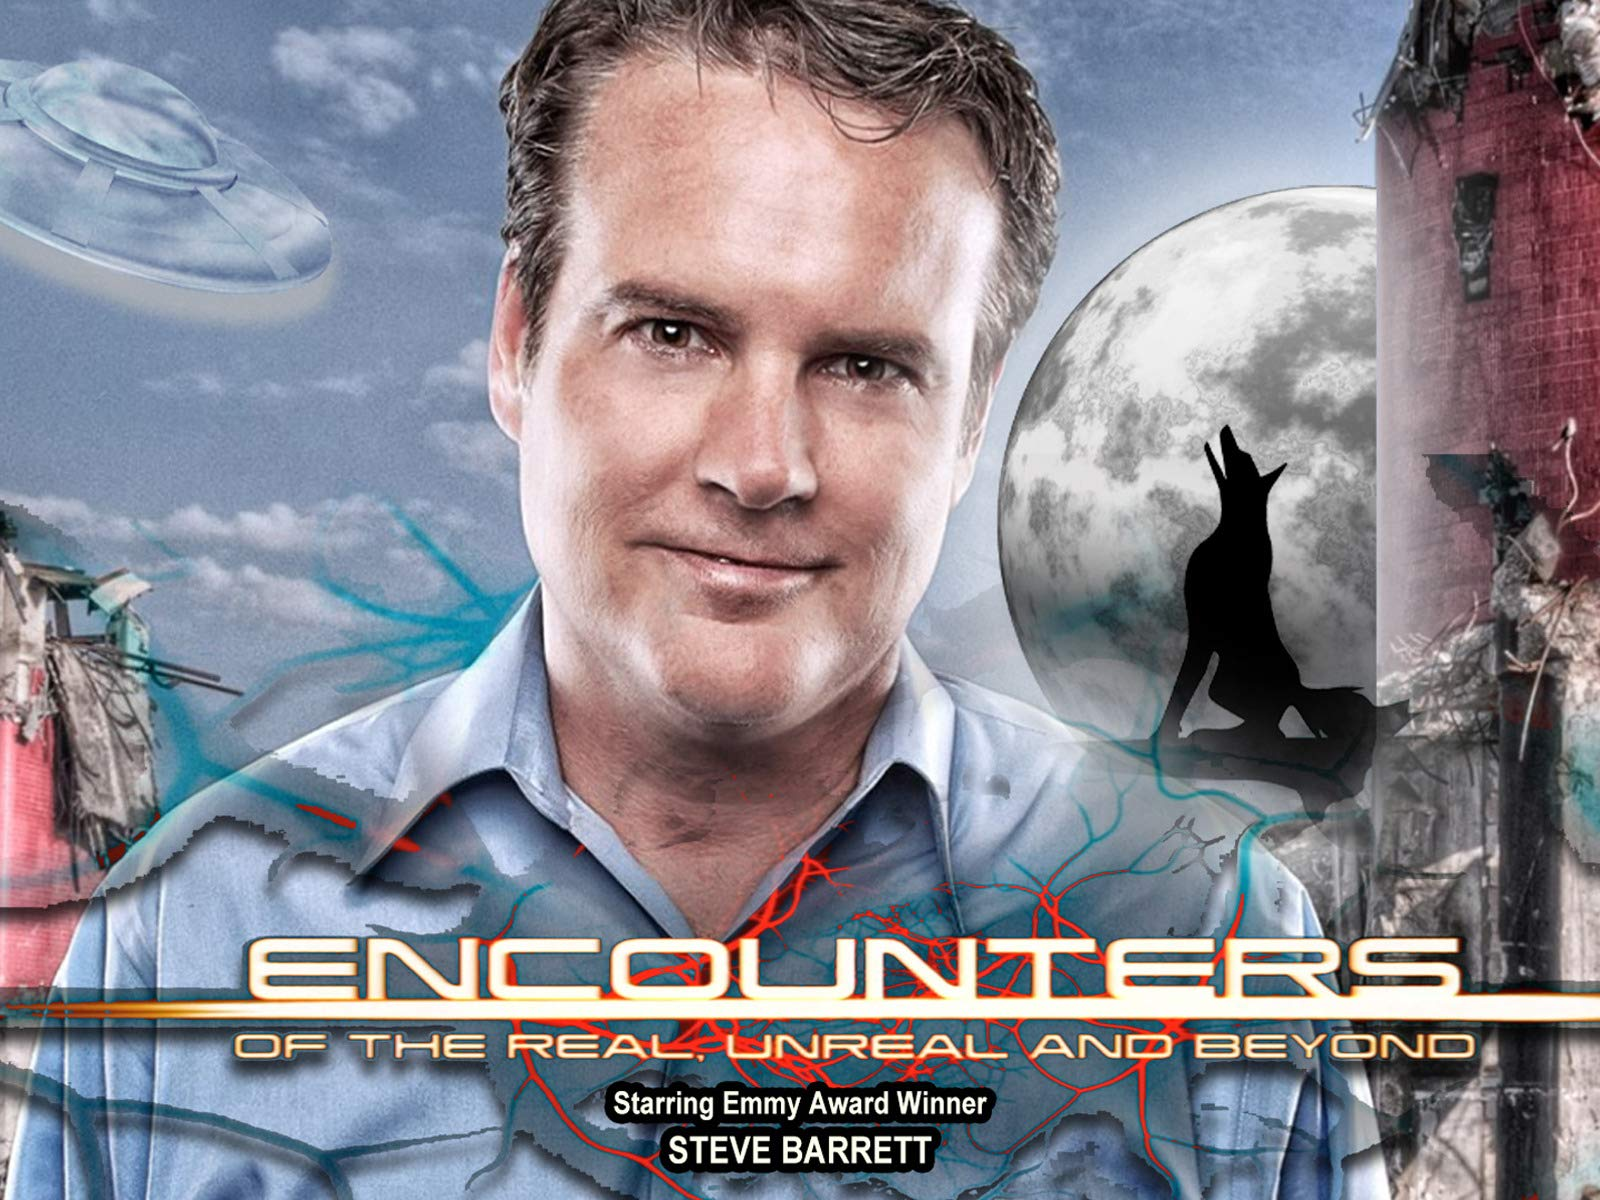 Encounters of the Real, Unreal and Beyond